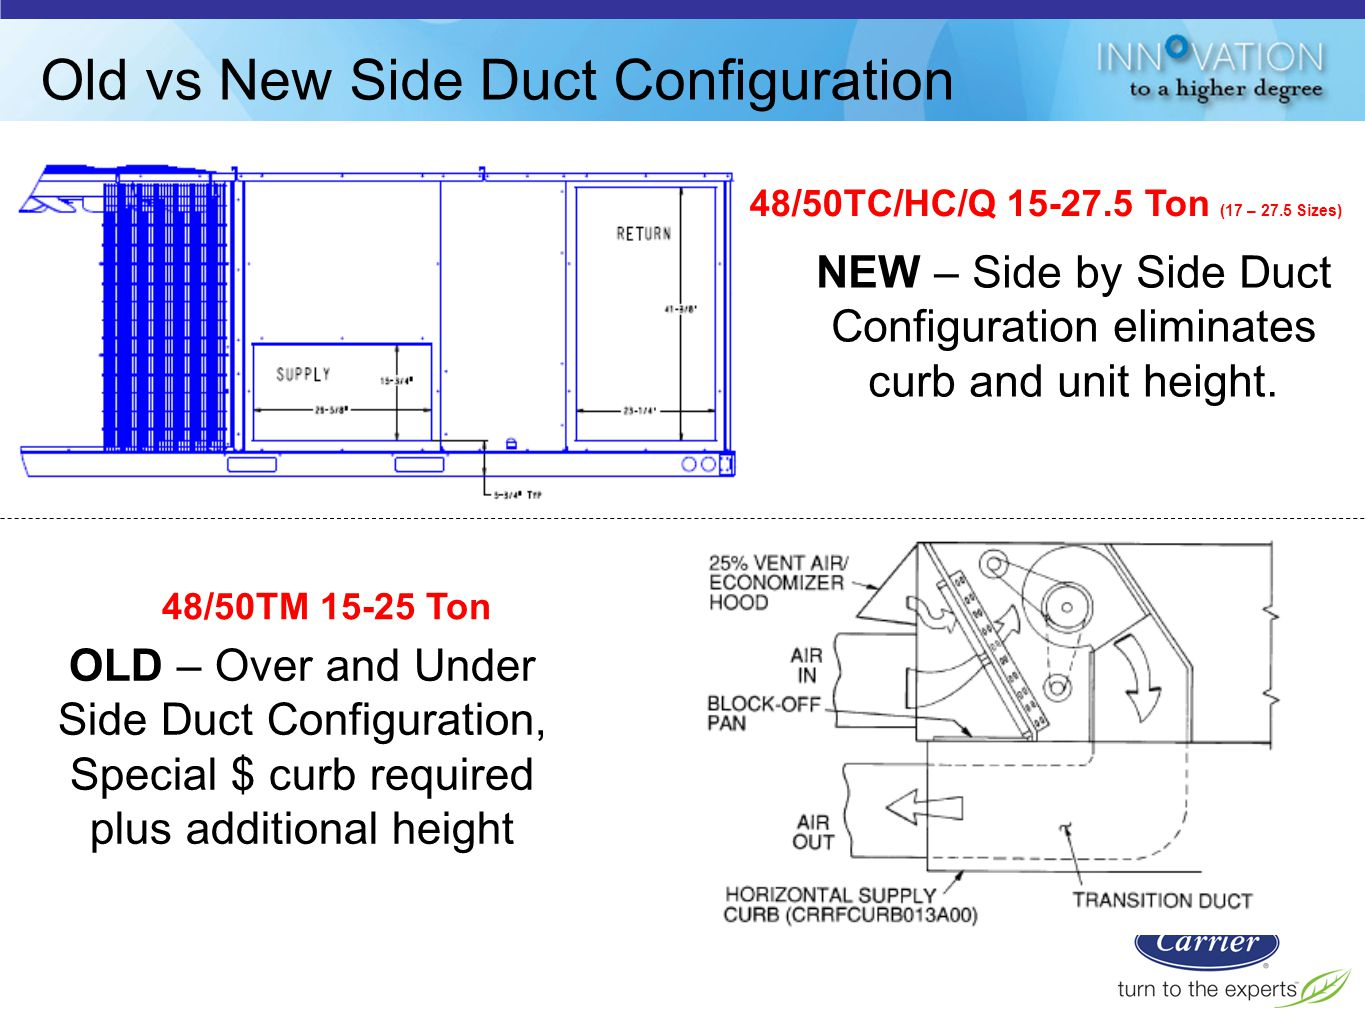 Light Commercial Rooftops Split Systems Ppt Video Online Download Hvac Air Handler Economizer In Addition Electric Furnace Heating Old Vs New Side Duct Configuration